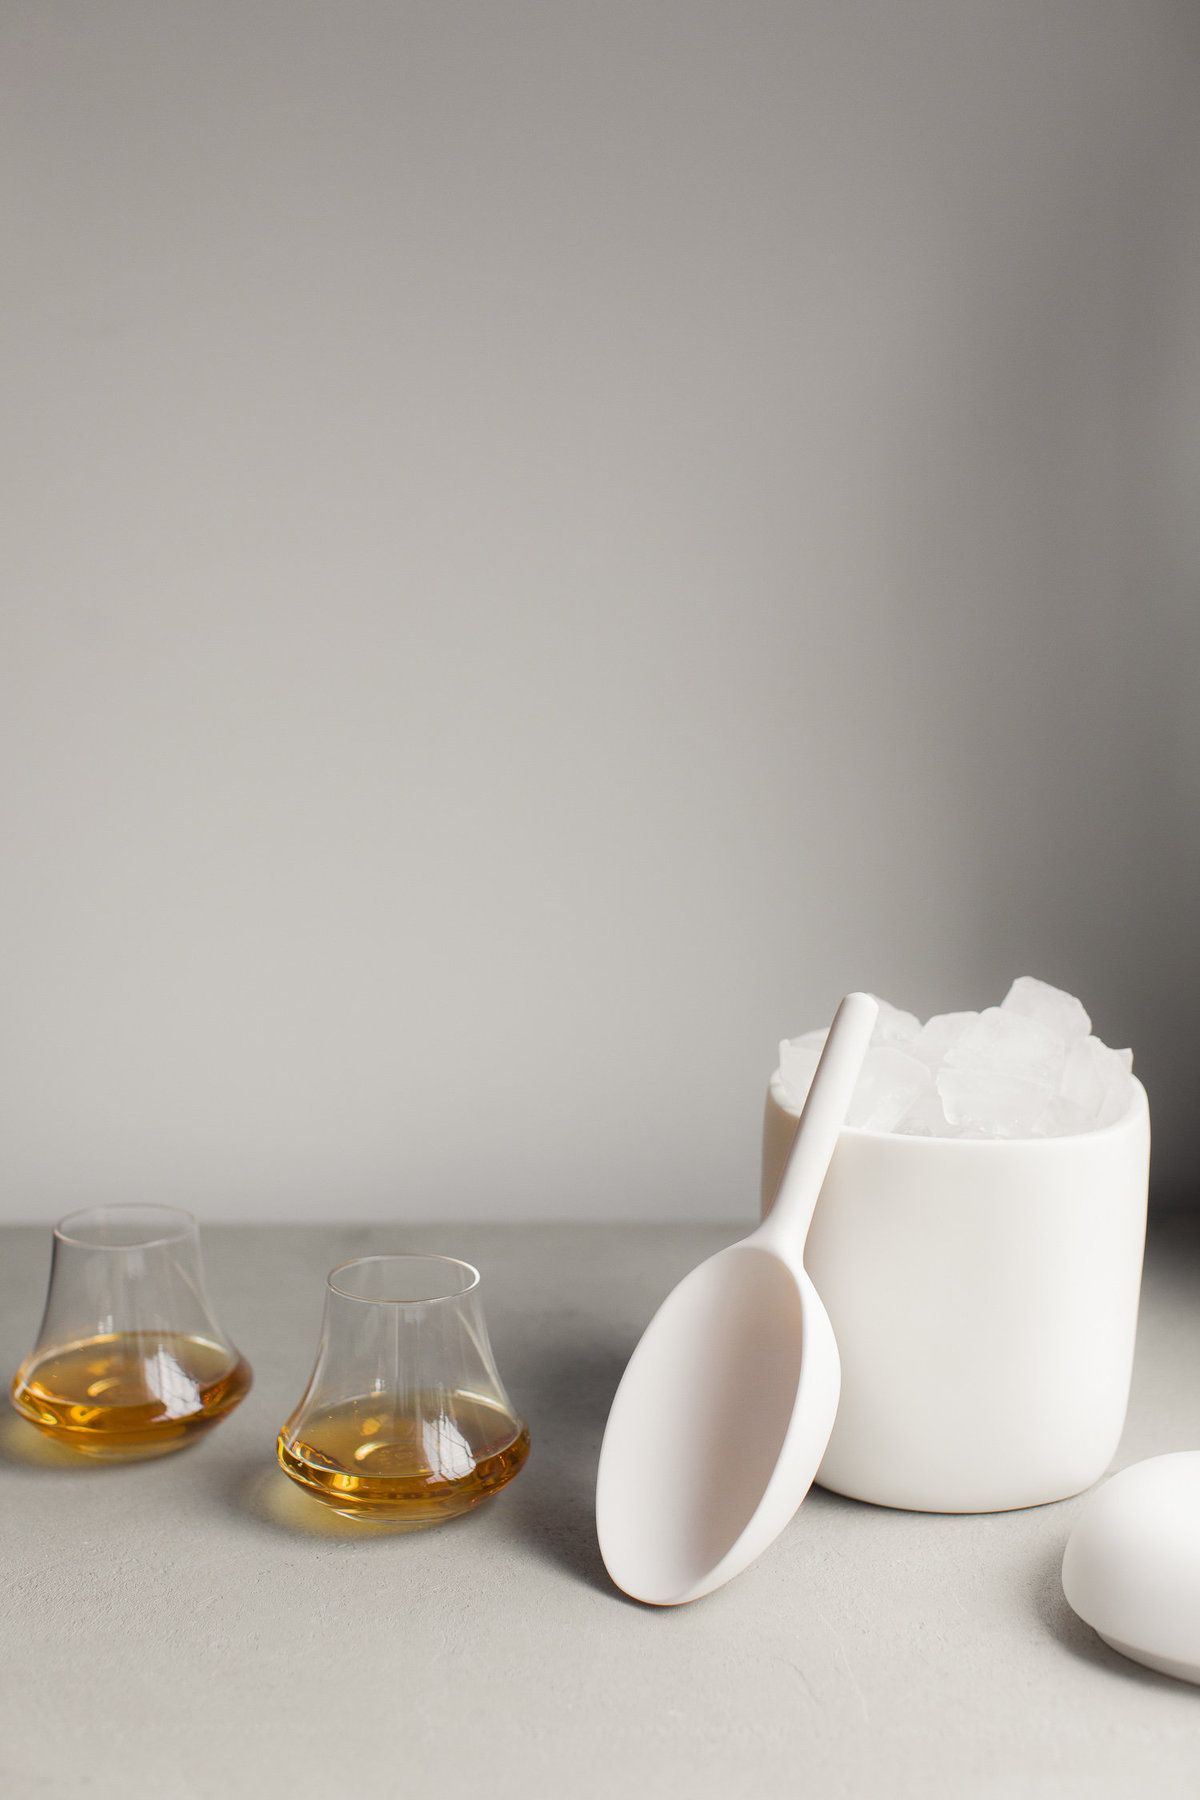 Tina Frey White Resin Ice Bucket - Gingerfinch Home - Anisa Sabet - Photographer-3